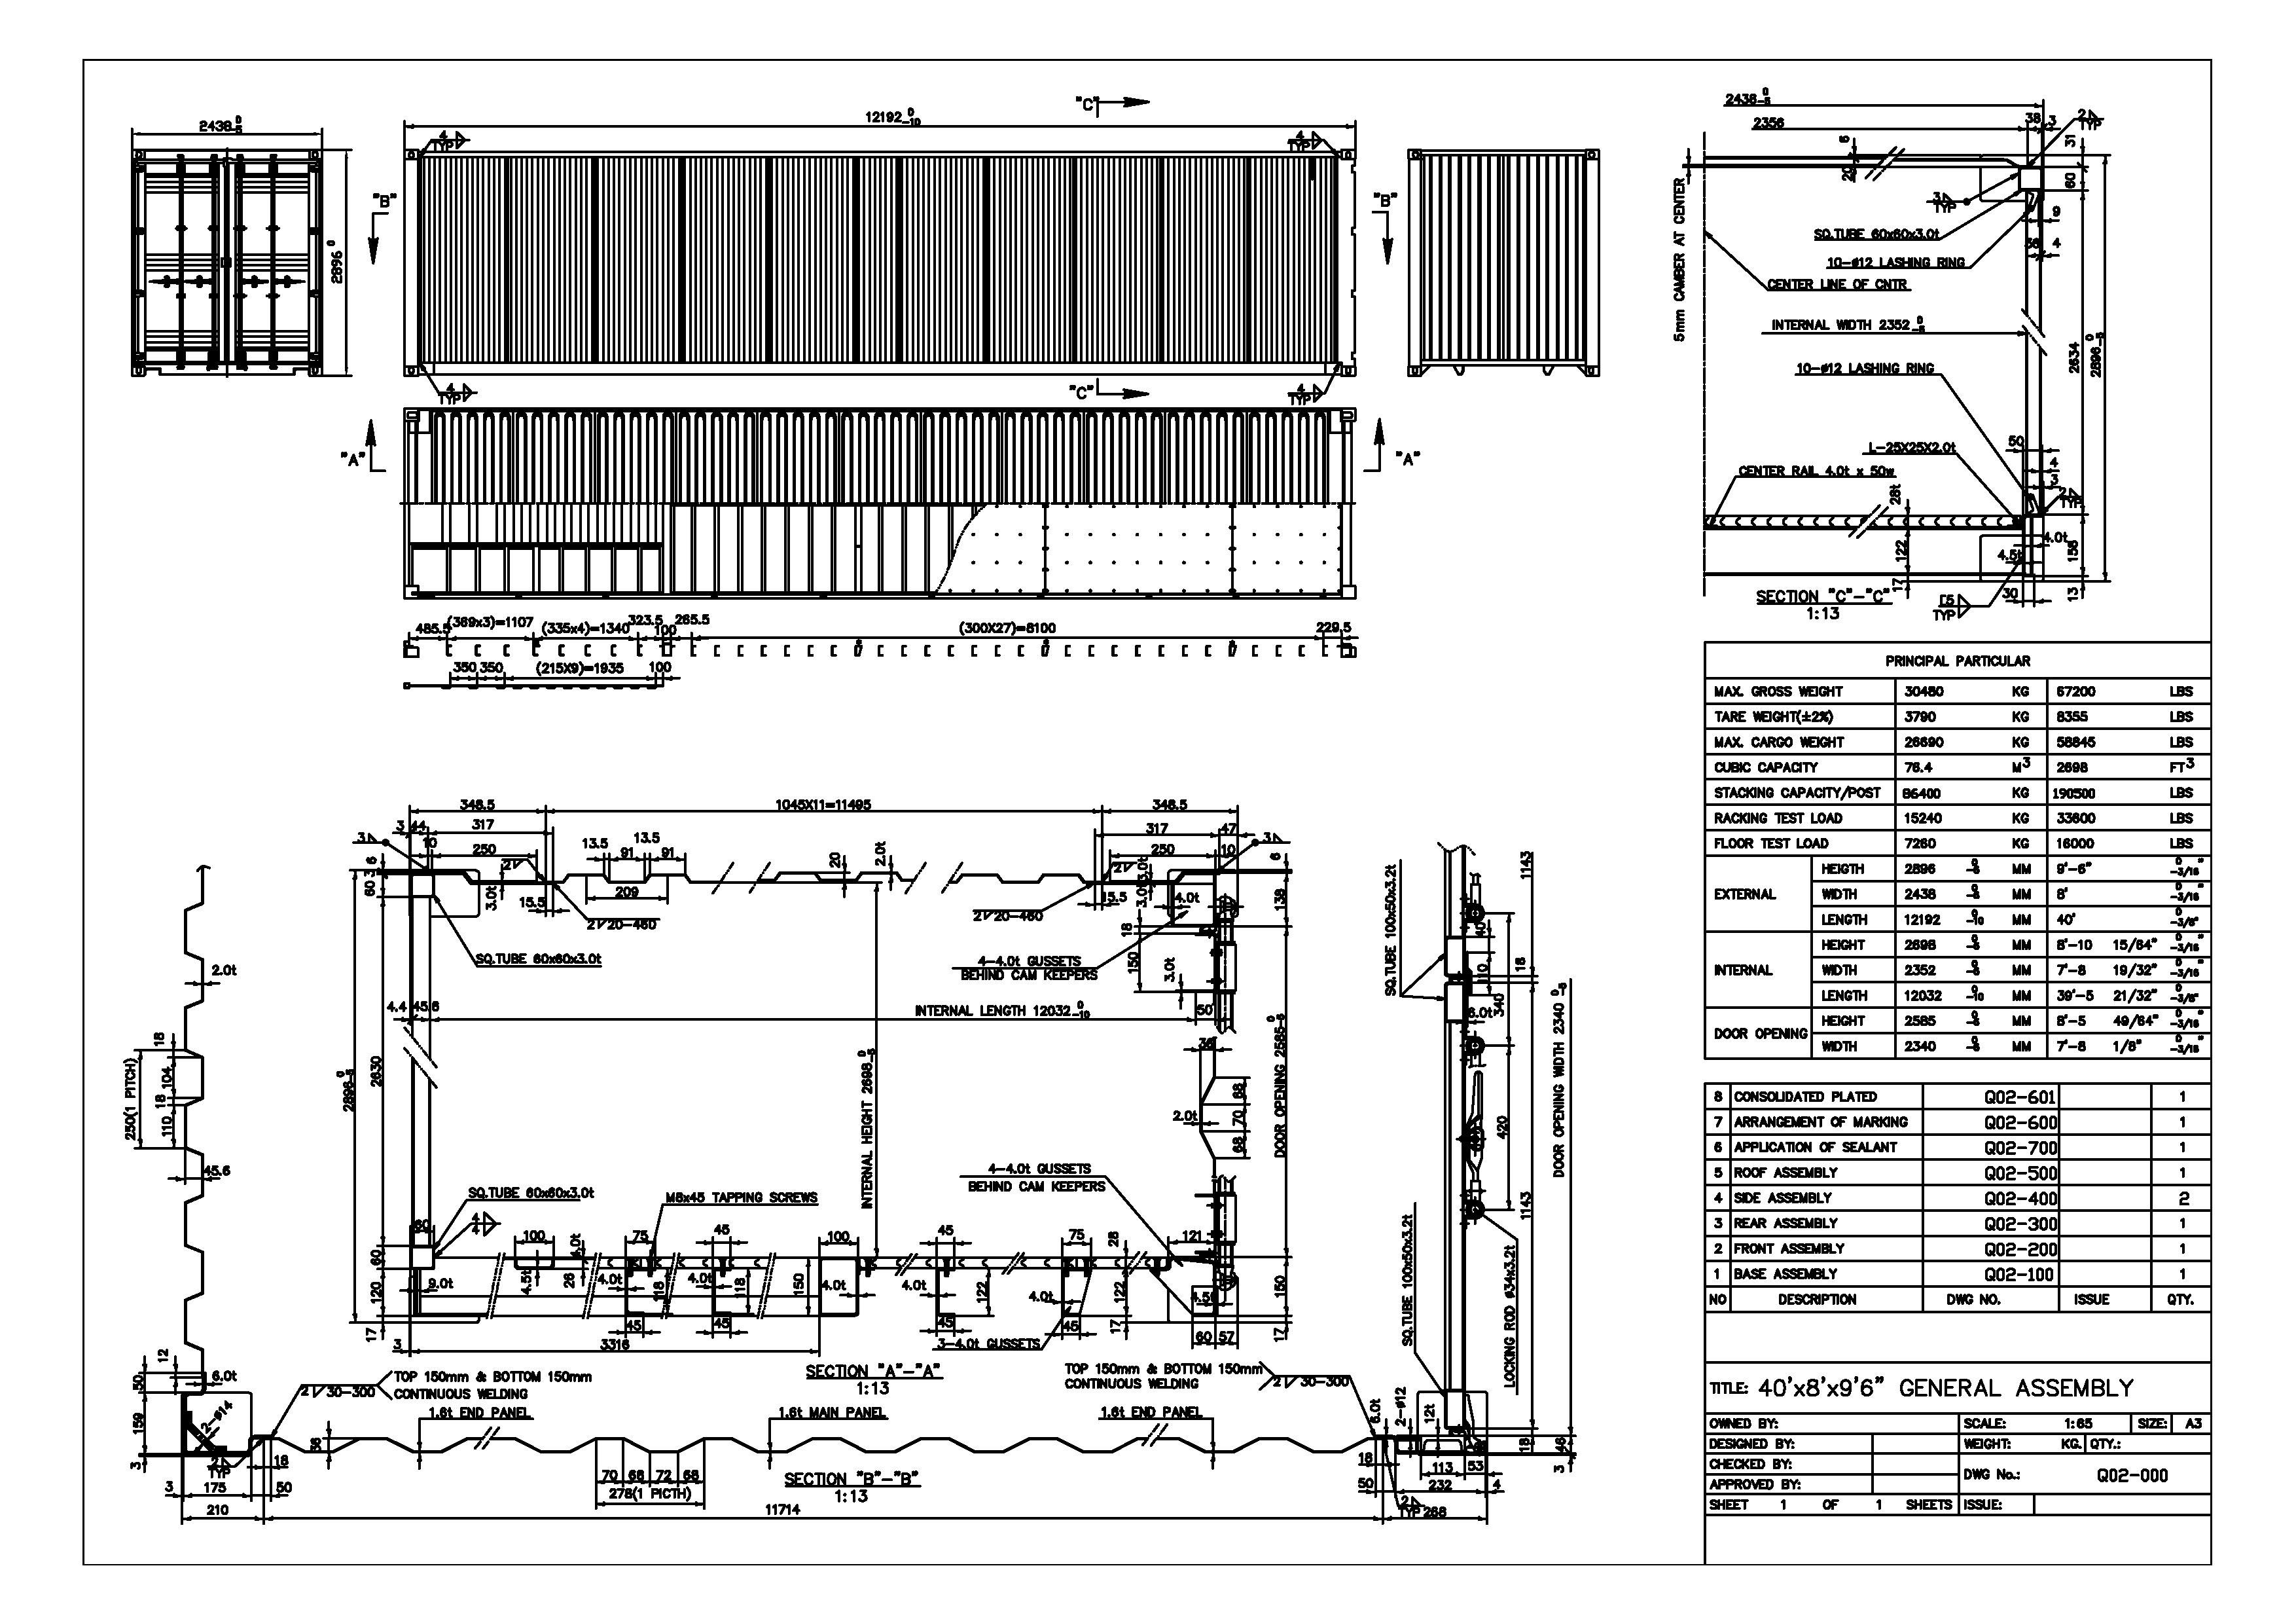 shipping container drawing | ] shipping CONTAINERS